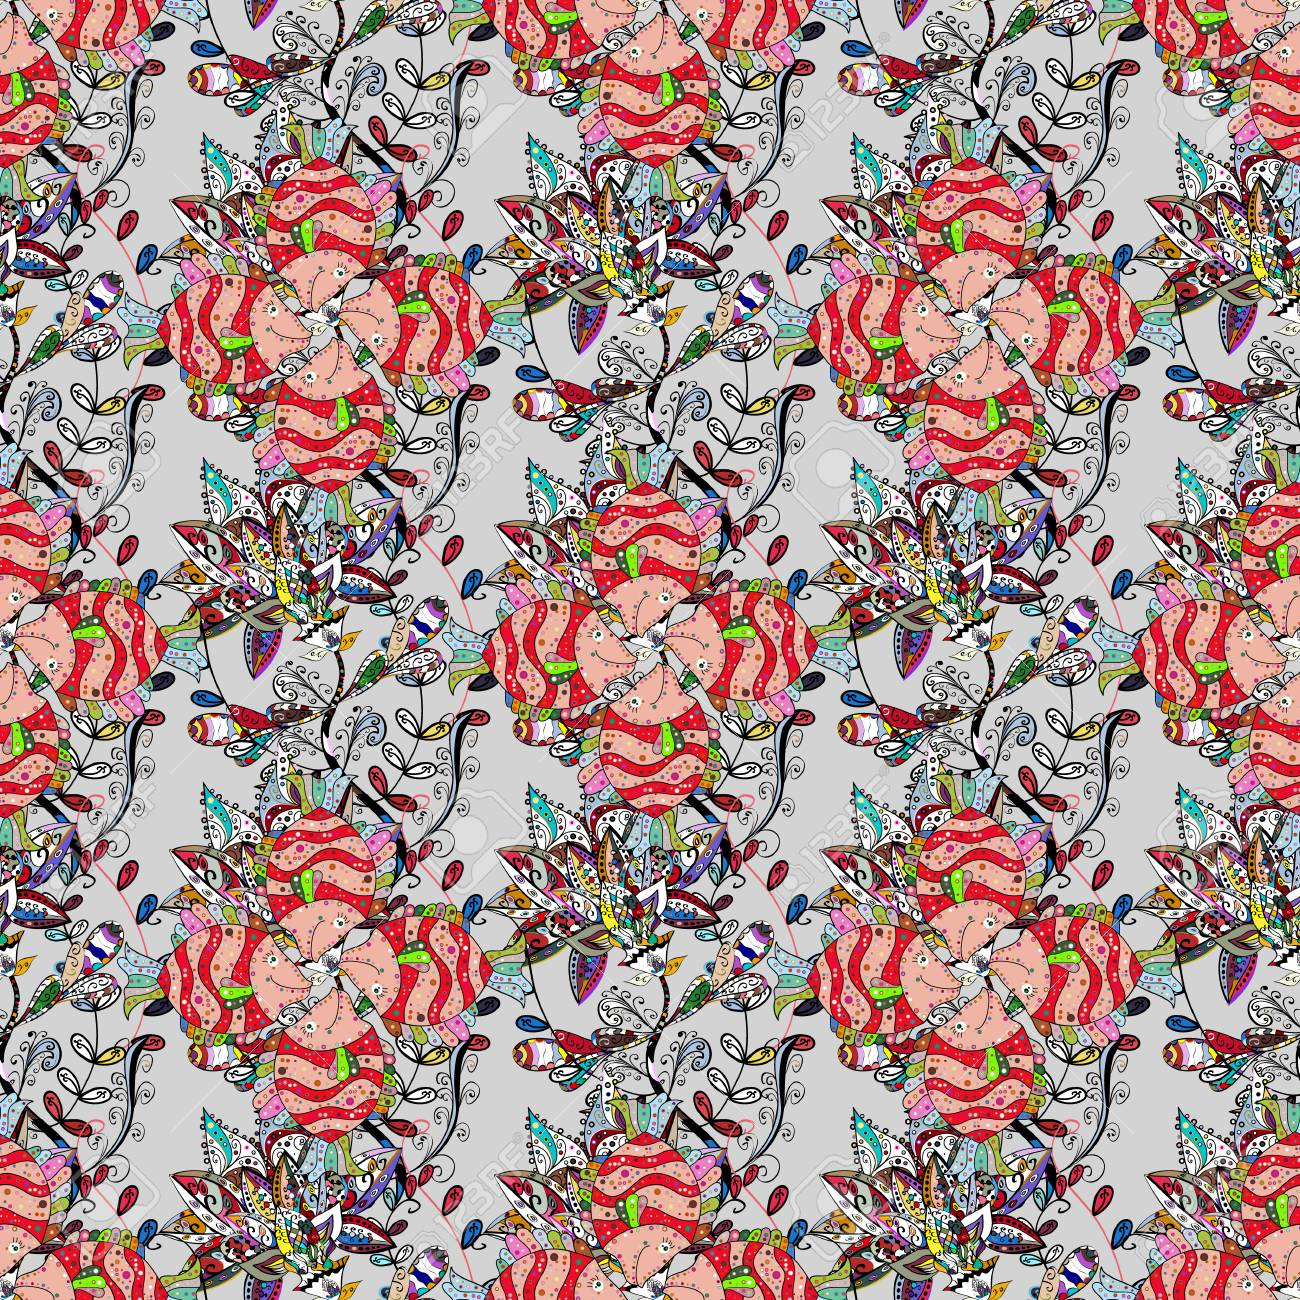 Textile Print For Bed Linen Jacket Package Design Fabric And